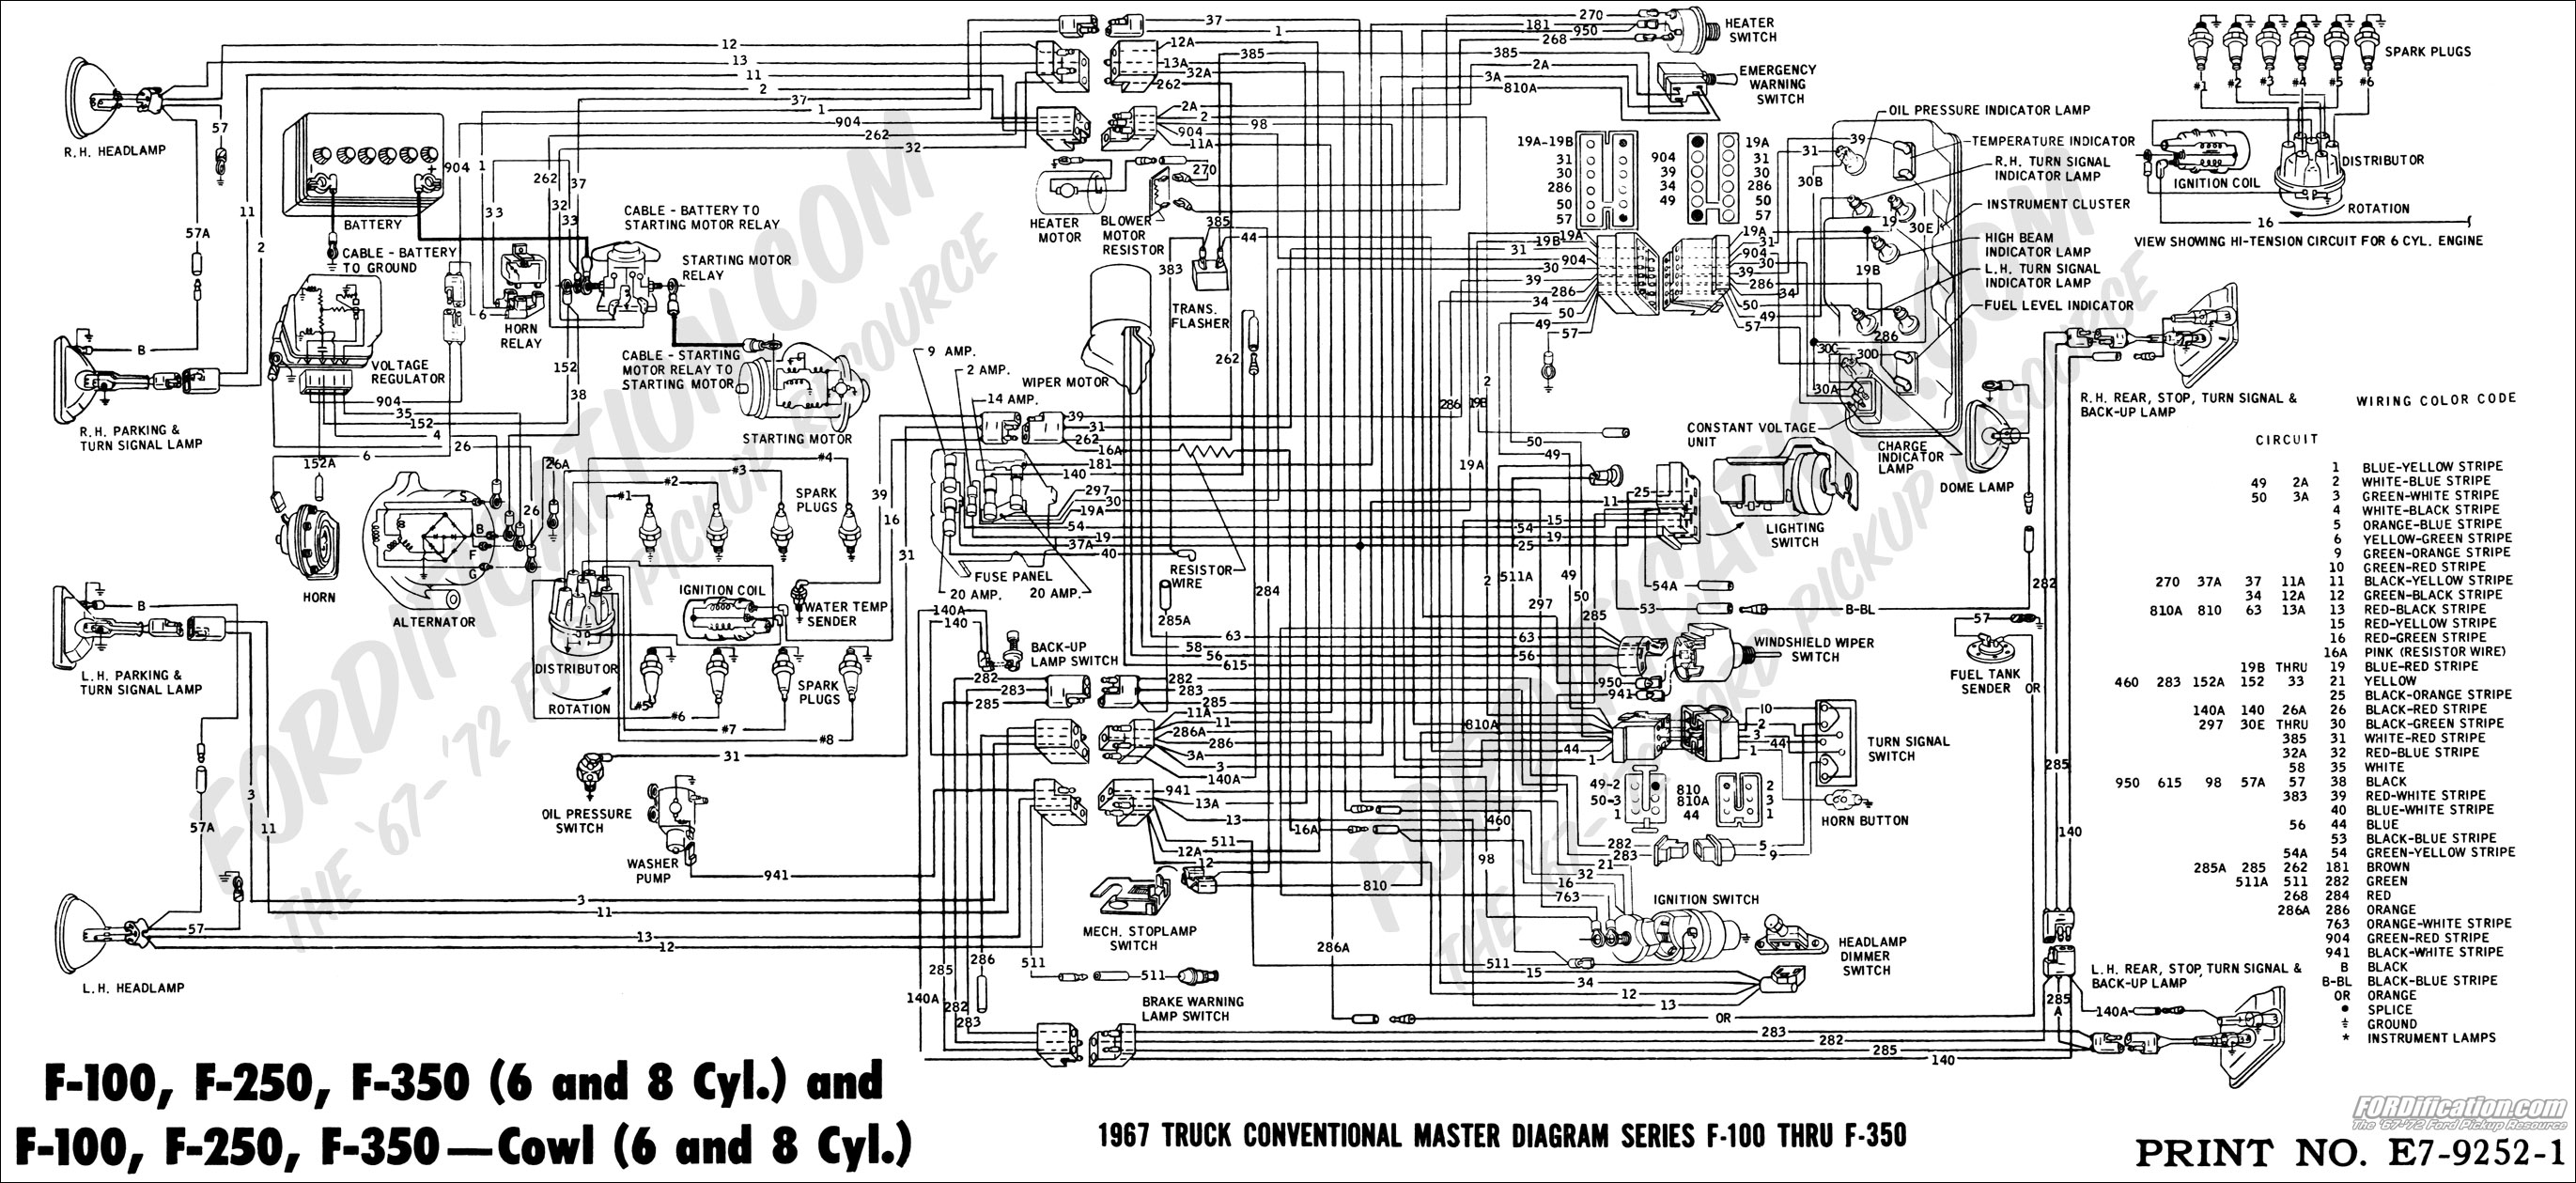 67masterdiagram ford truck technical drawings and schematics section h wiring 1977 ford f150 wiring diagram at eliteediting.co